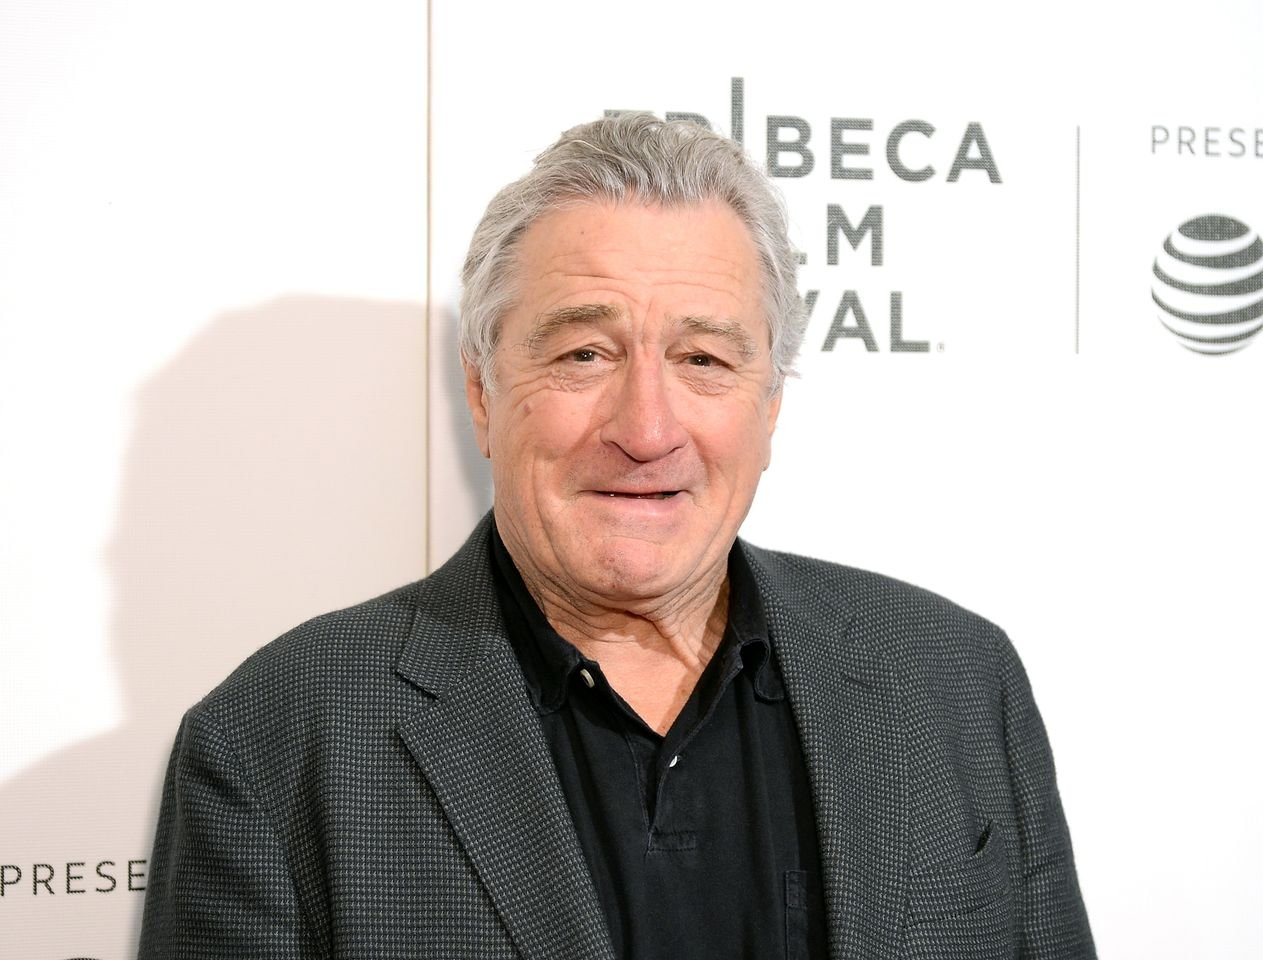 """Robert De Niro attends the DIRECTTV Premiere Of """"Women Walks Ahead"""" At 2018 Tribeca Film Festival on April 25, 2018 in New York City. 